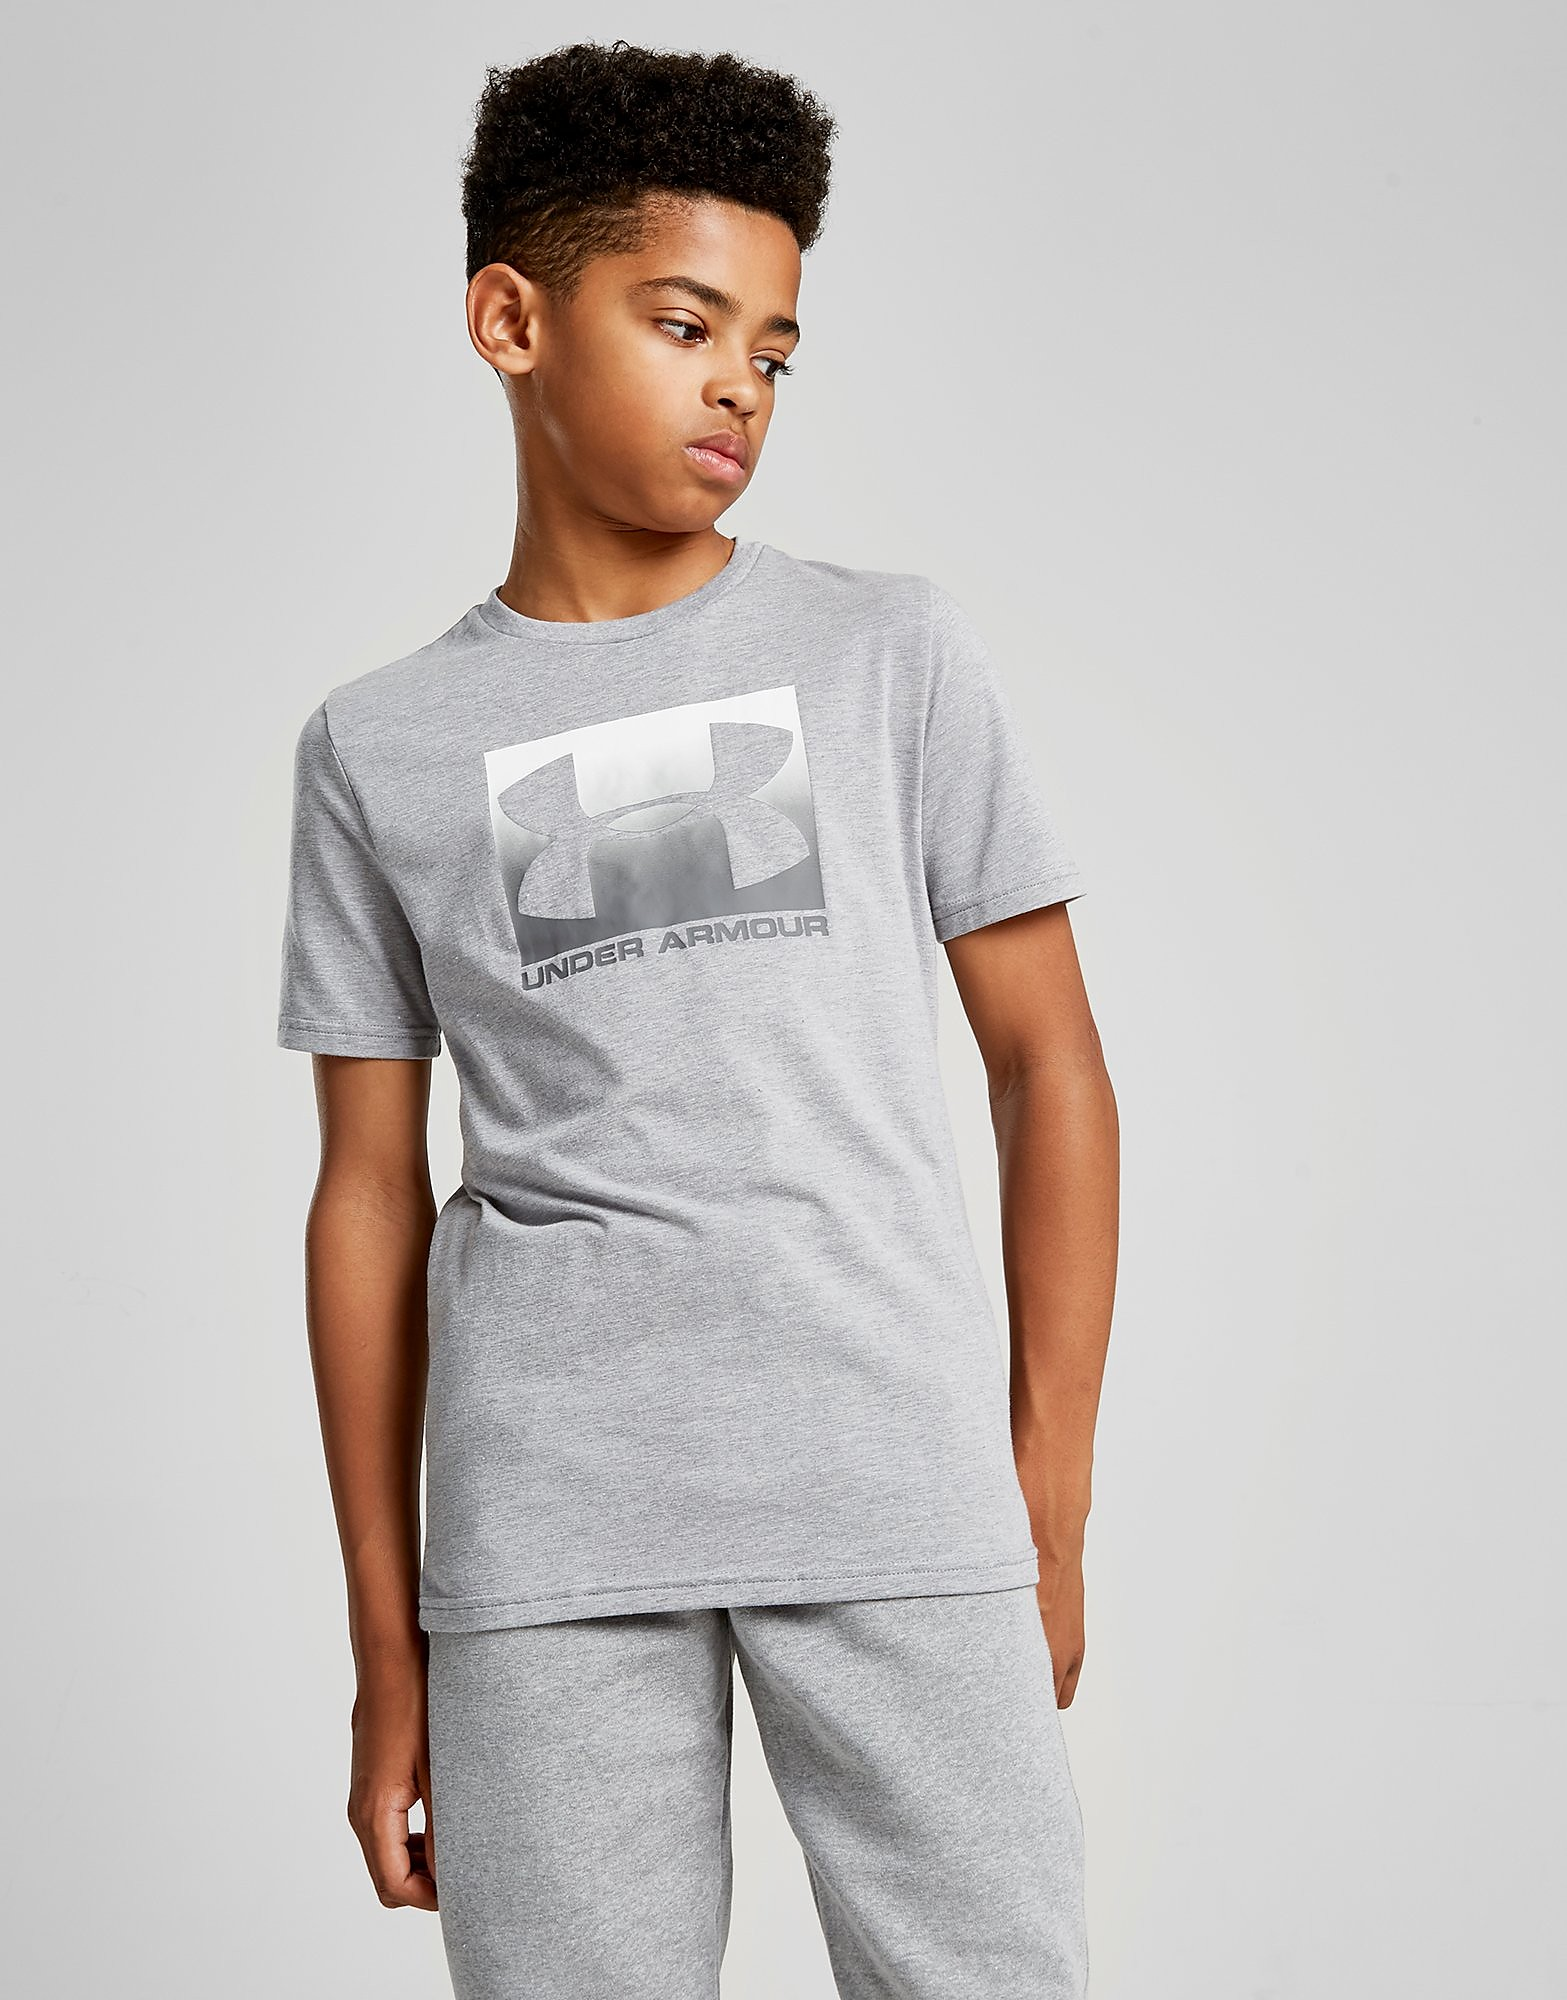 Under Armour Box T-Shirt Junior - Grijs - Kind